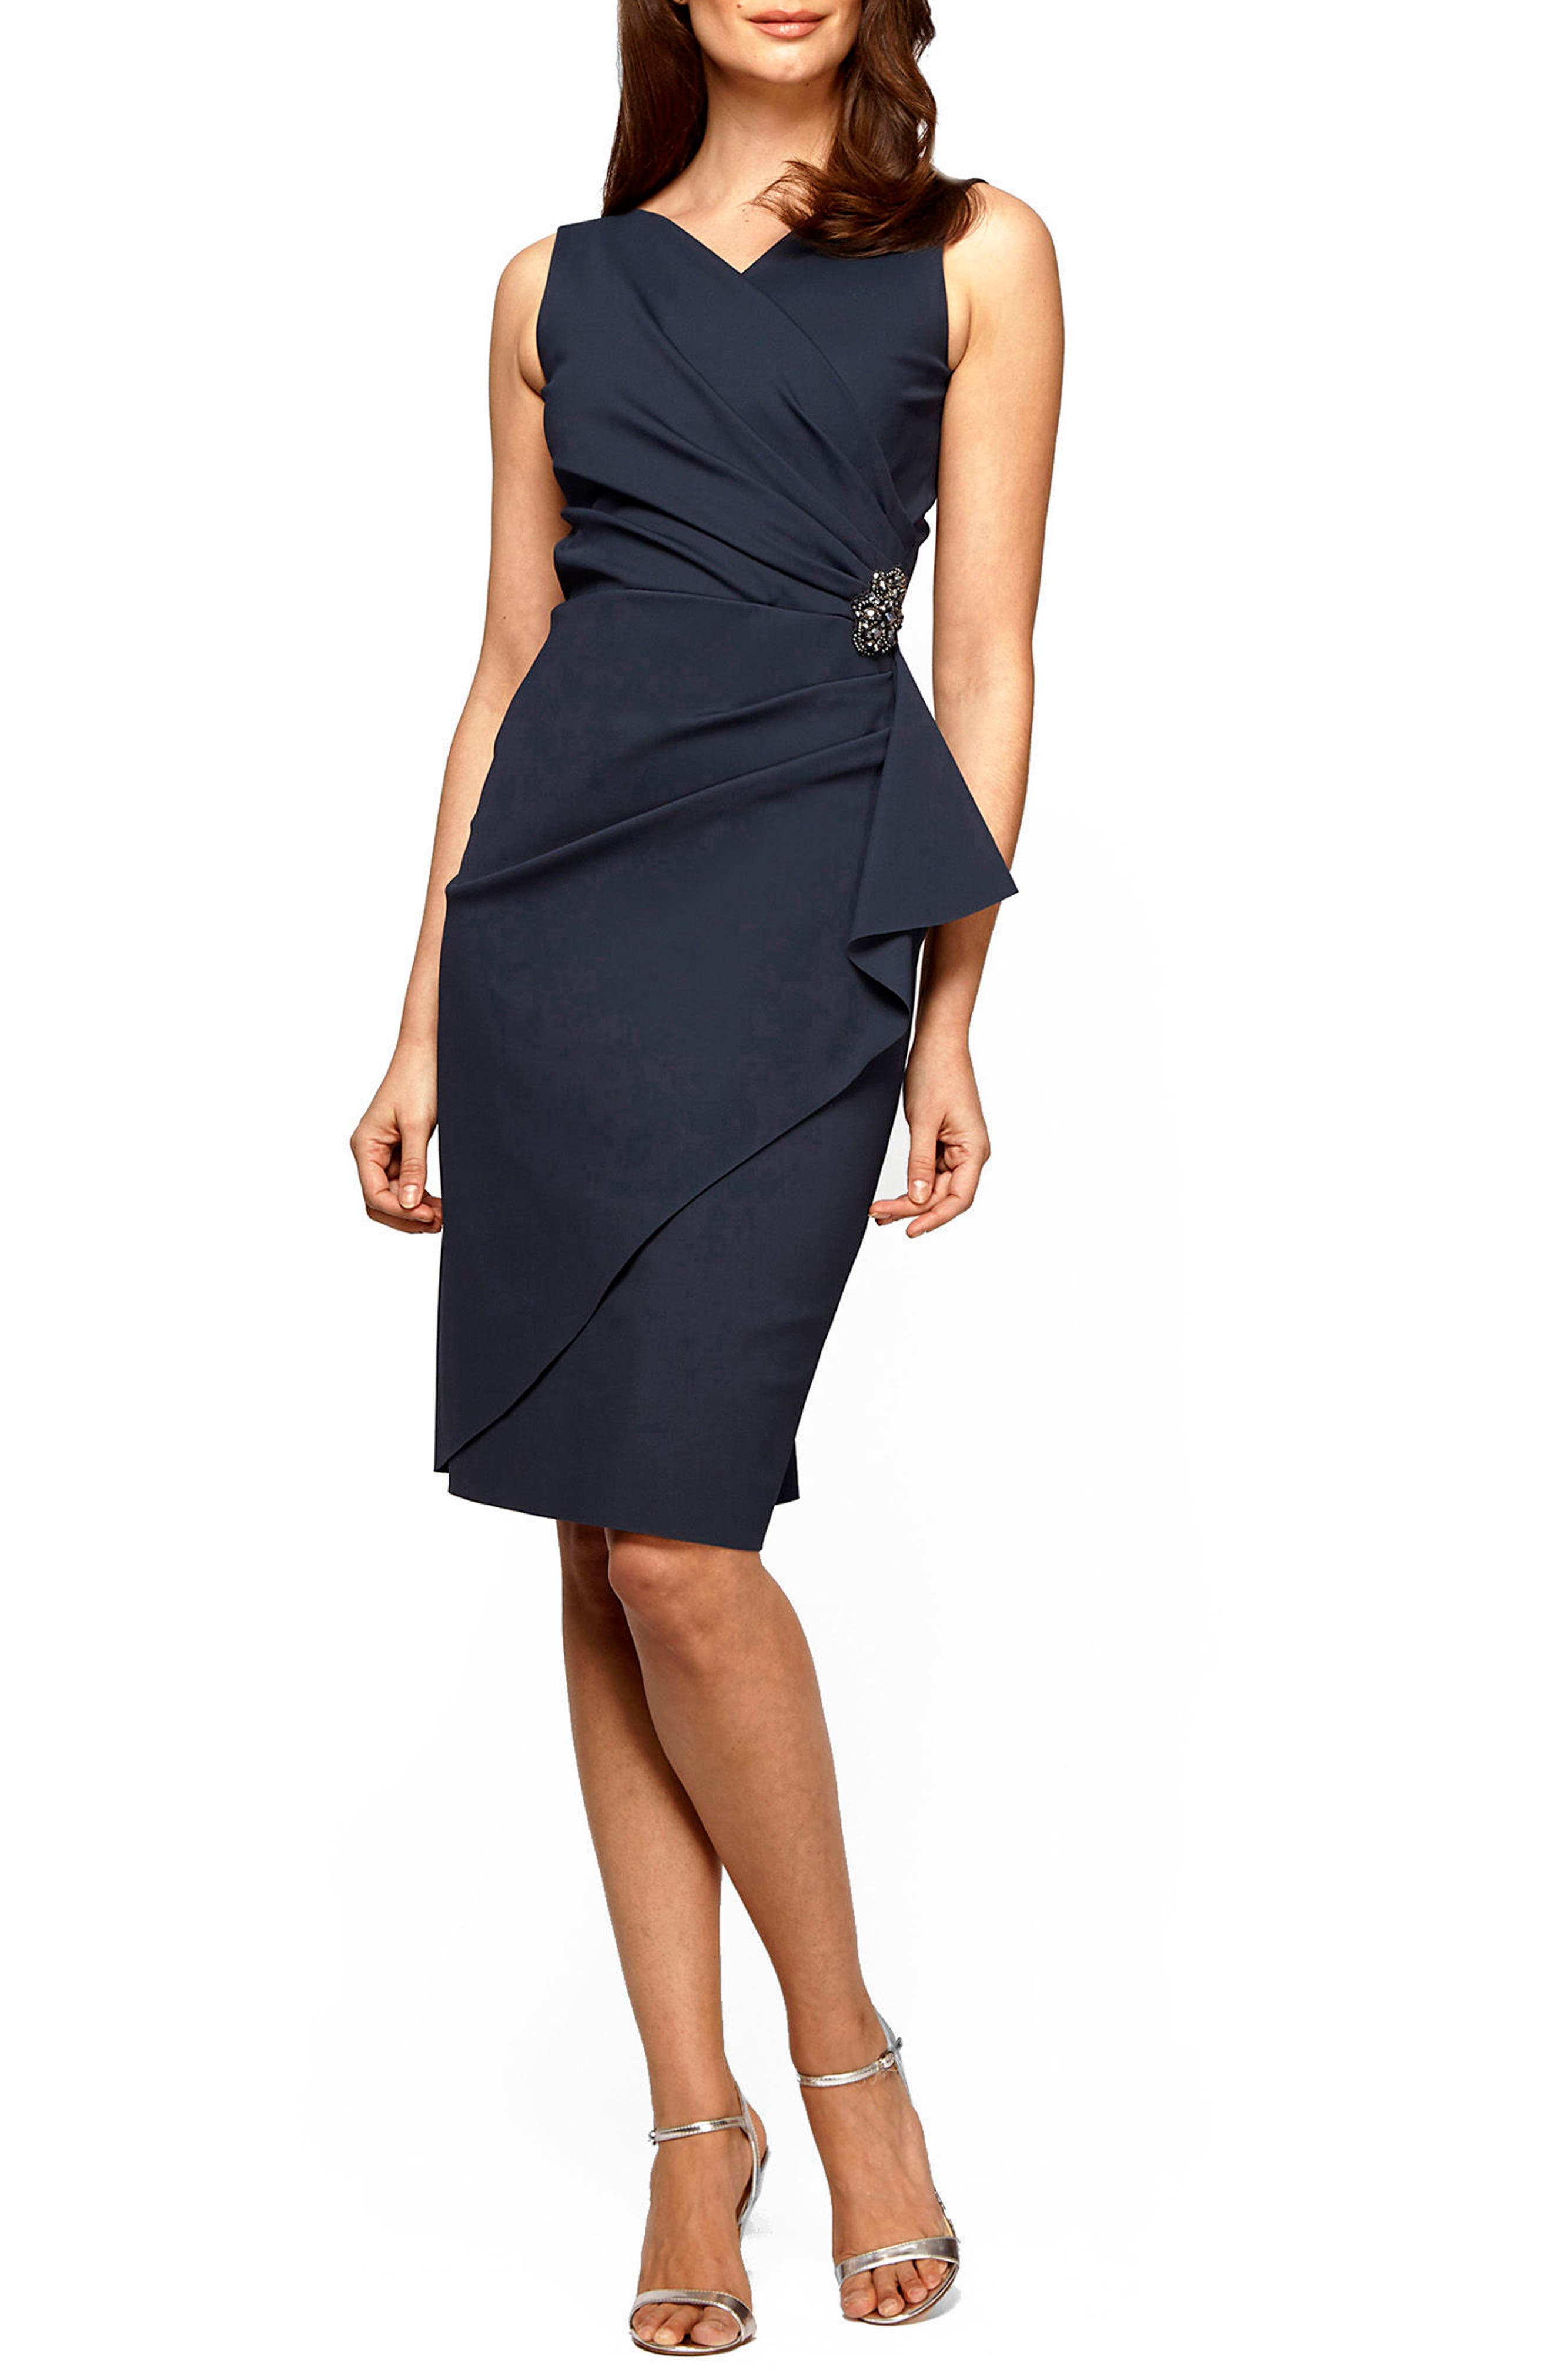 Graceful ruching gathers at a sparkling ornament to create the faux-wrap silhouette of a chic and simplified stretch-jersey dress. Style Name: Alex Evenings Side Ruched Cocktail Dress (Regular & Petite). Style Number: 1123772 21. Available in stores.